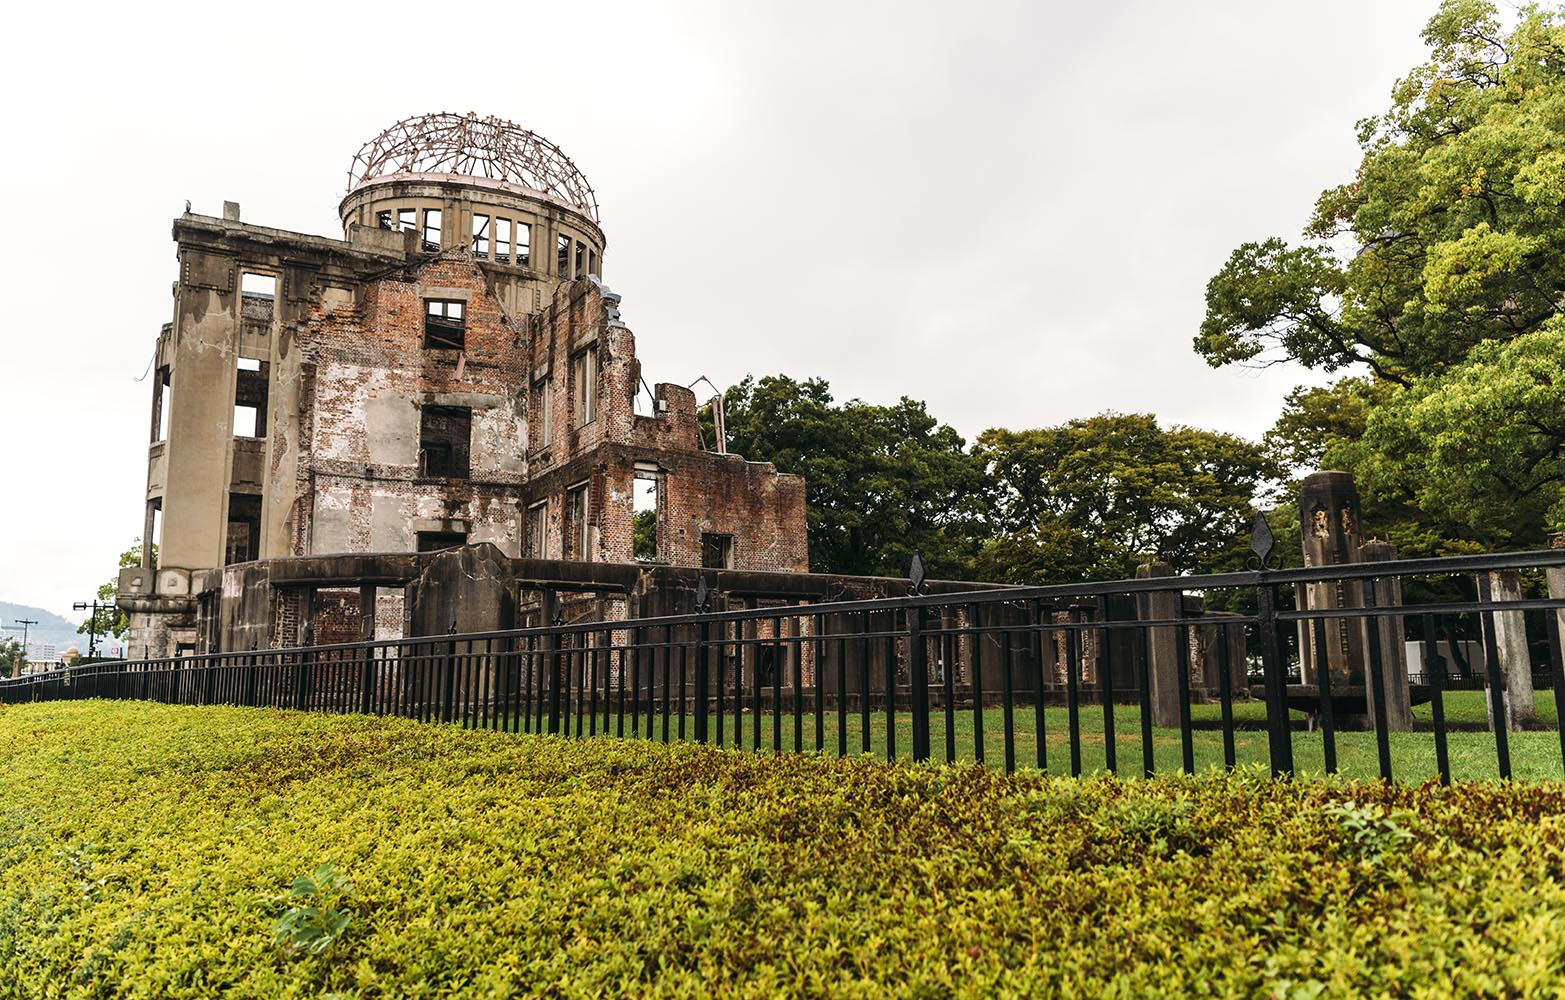 The Atomic Bomb dome, one of the few buildings left standing aft